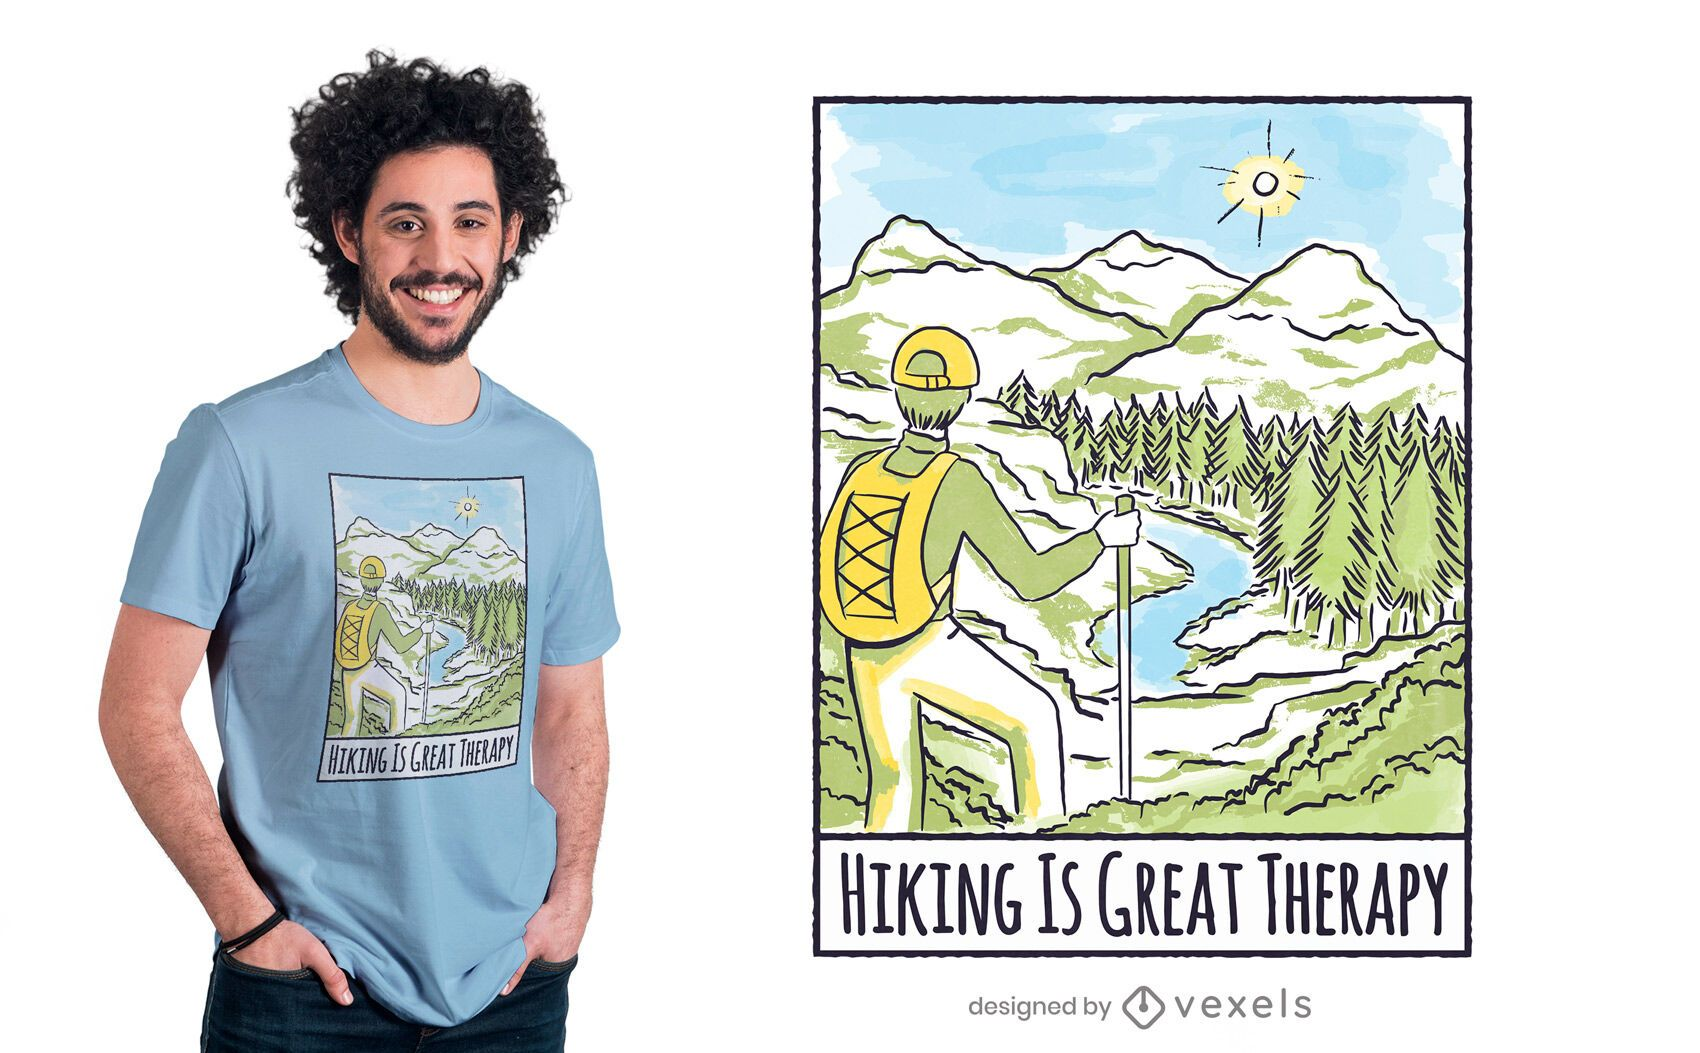 Hiking is therapy t-shirt design